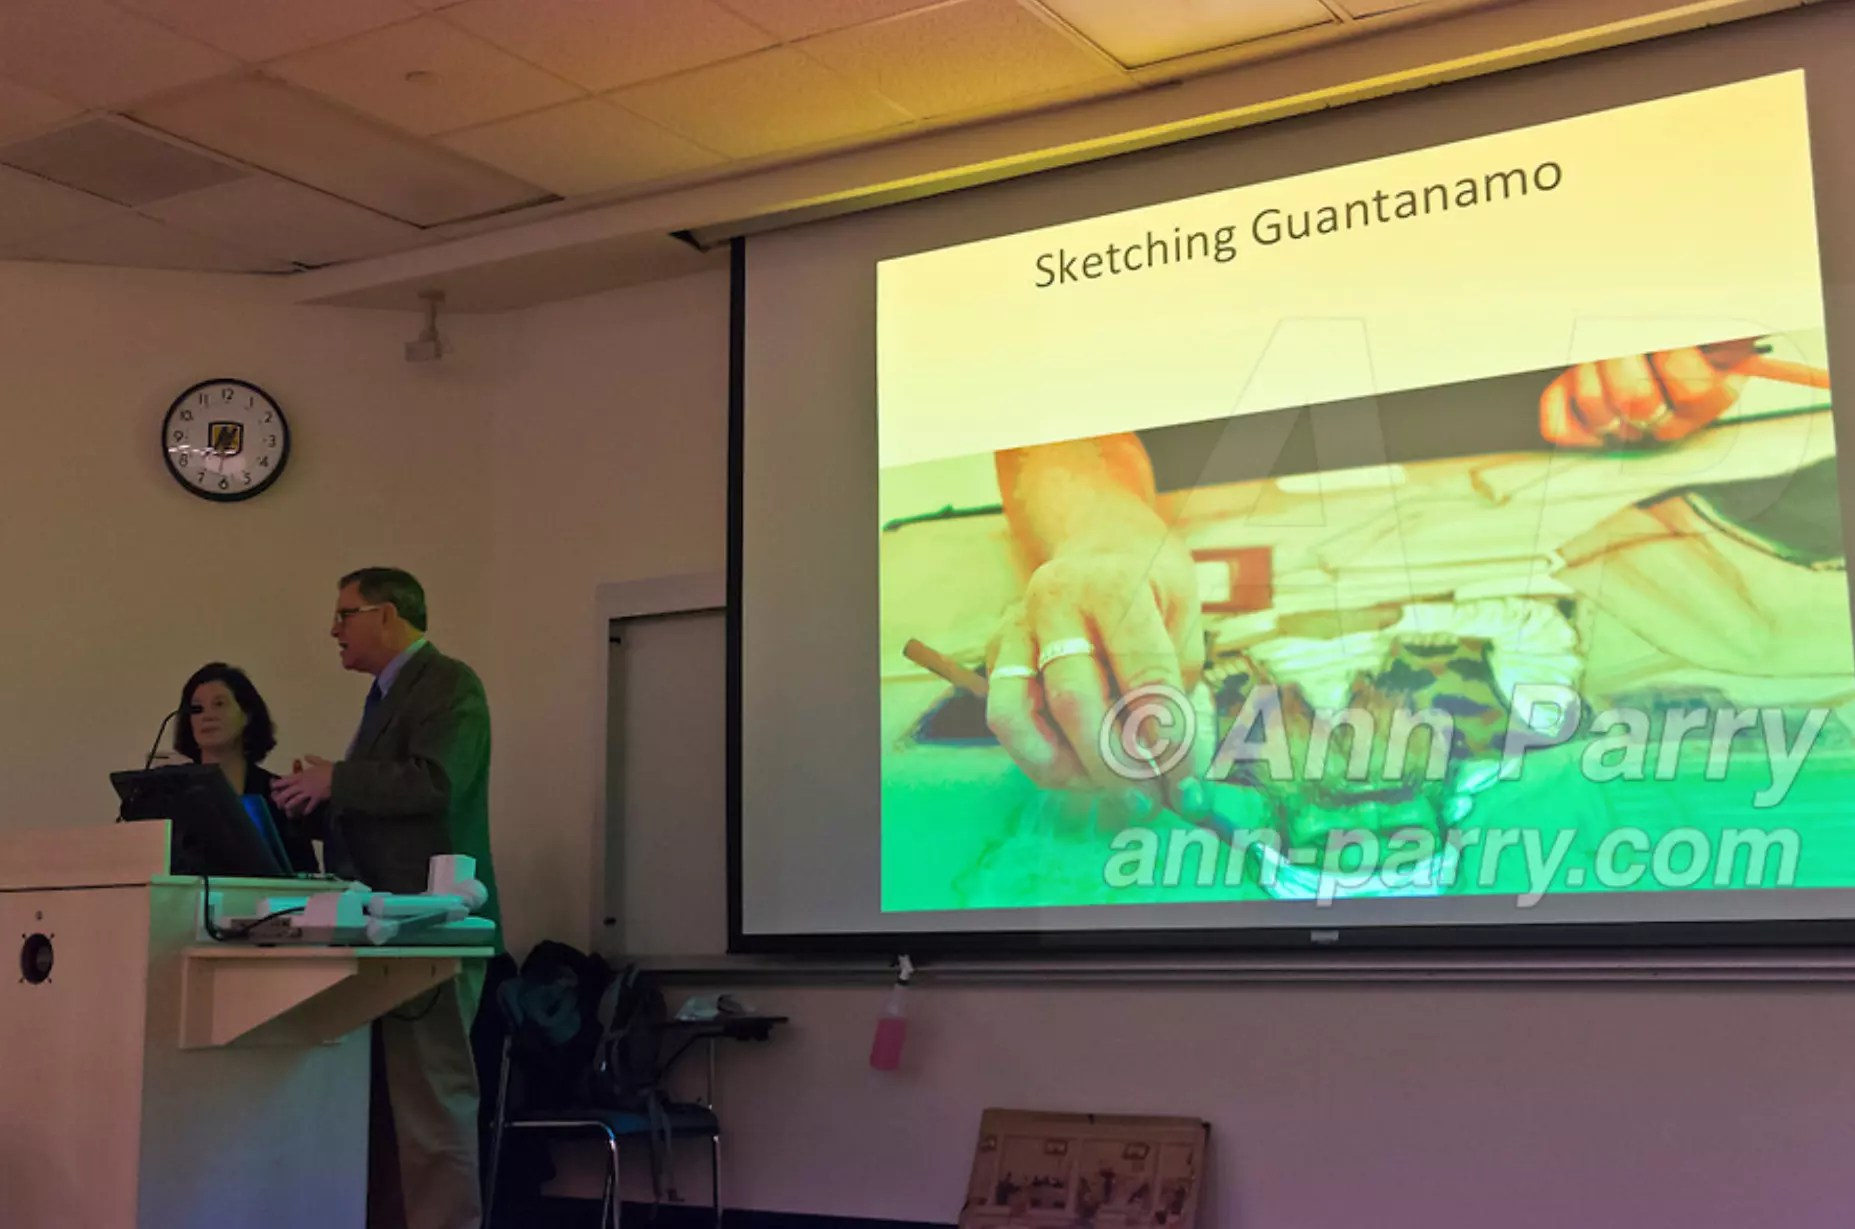 "Hempstead, NY, U.S. 12th Nov. 2013. Asst. Prof. DANIEL VAN BENTHUYSEN introduces JANET HAMLIN, a courtroom artist covering the military tribunals at Guantanamo Bay since 2006, who showed her drawings and discussed her work at Hofstra University. Much of the time she was only journalist providing a visual record of events at the U.S. naval base in Cuba, and her new book ""Sketching Guantanomo"" is a collection of her images."